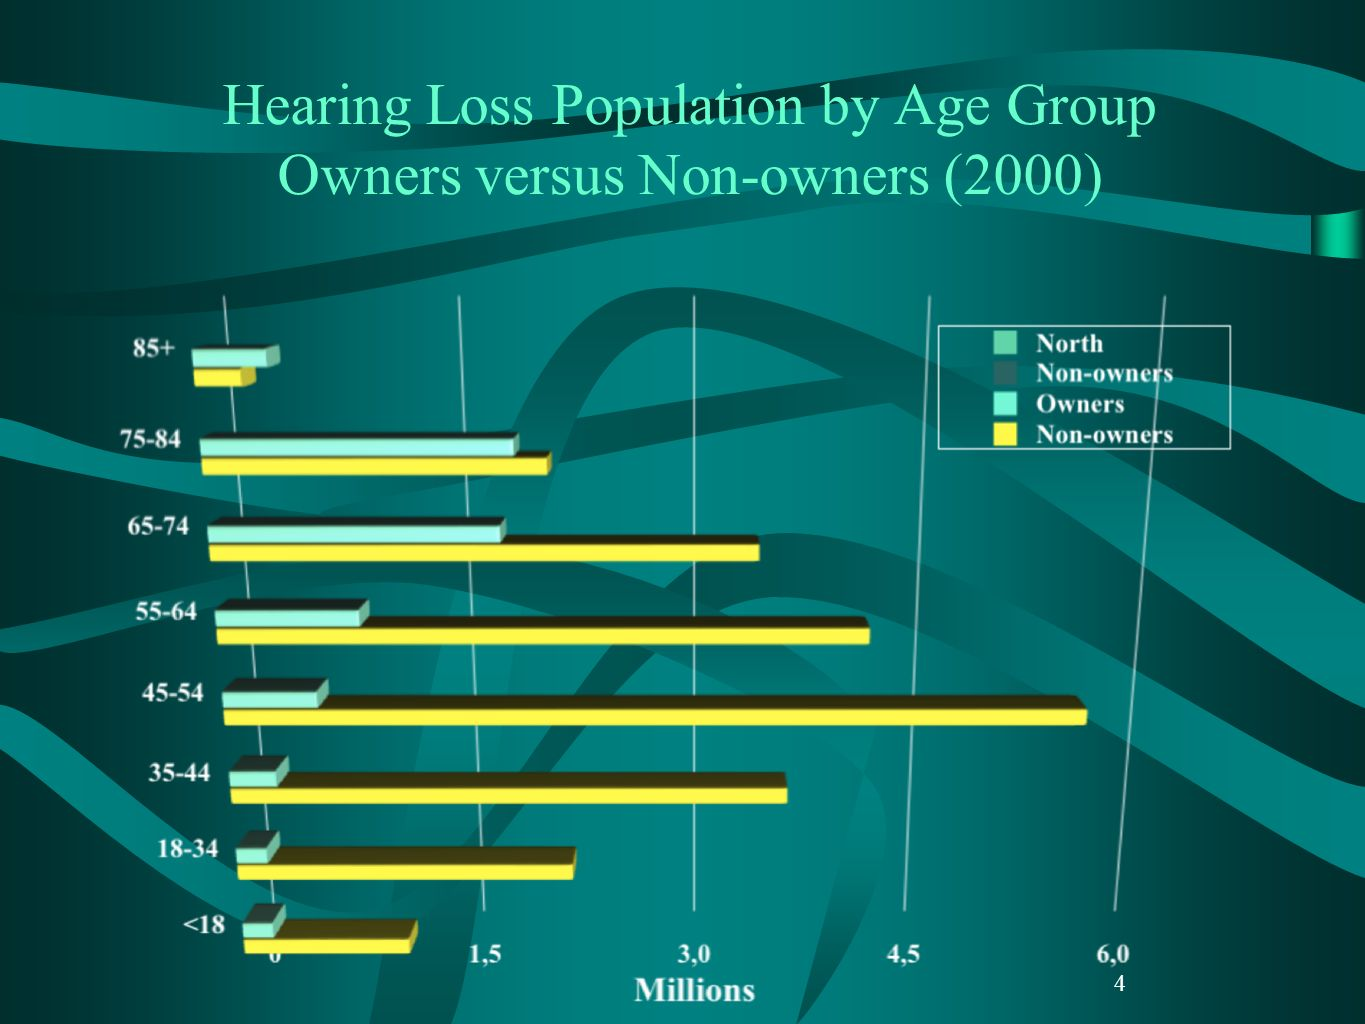 4 Hearing Loss Population by Age Group Owners versus Non-owners (2000)